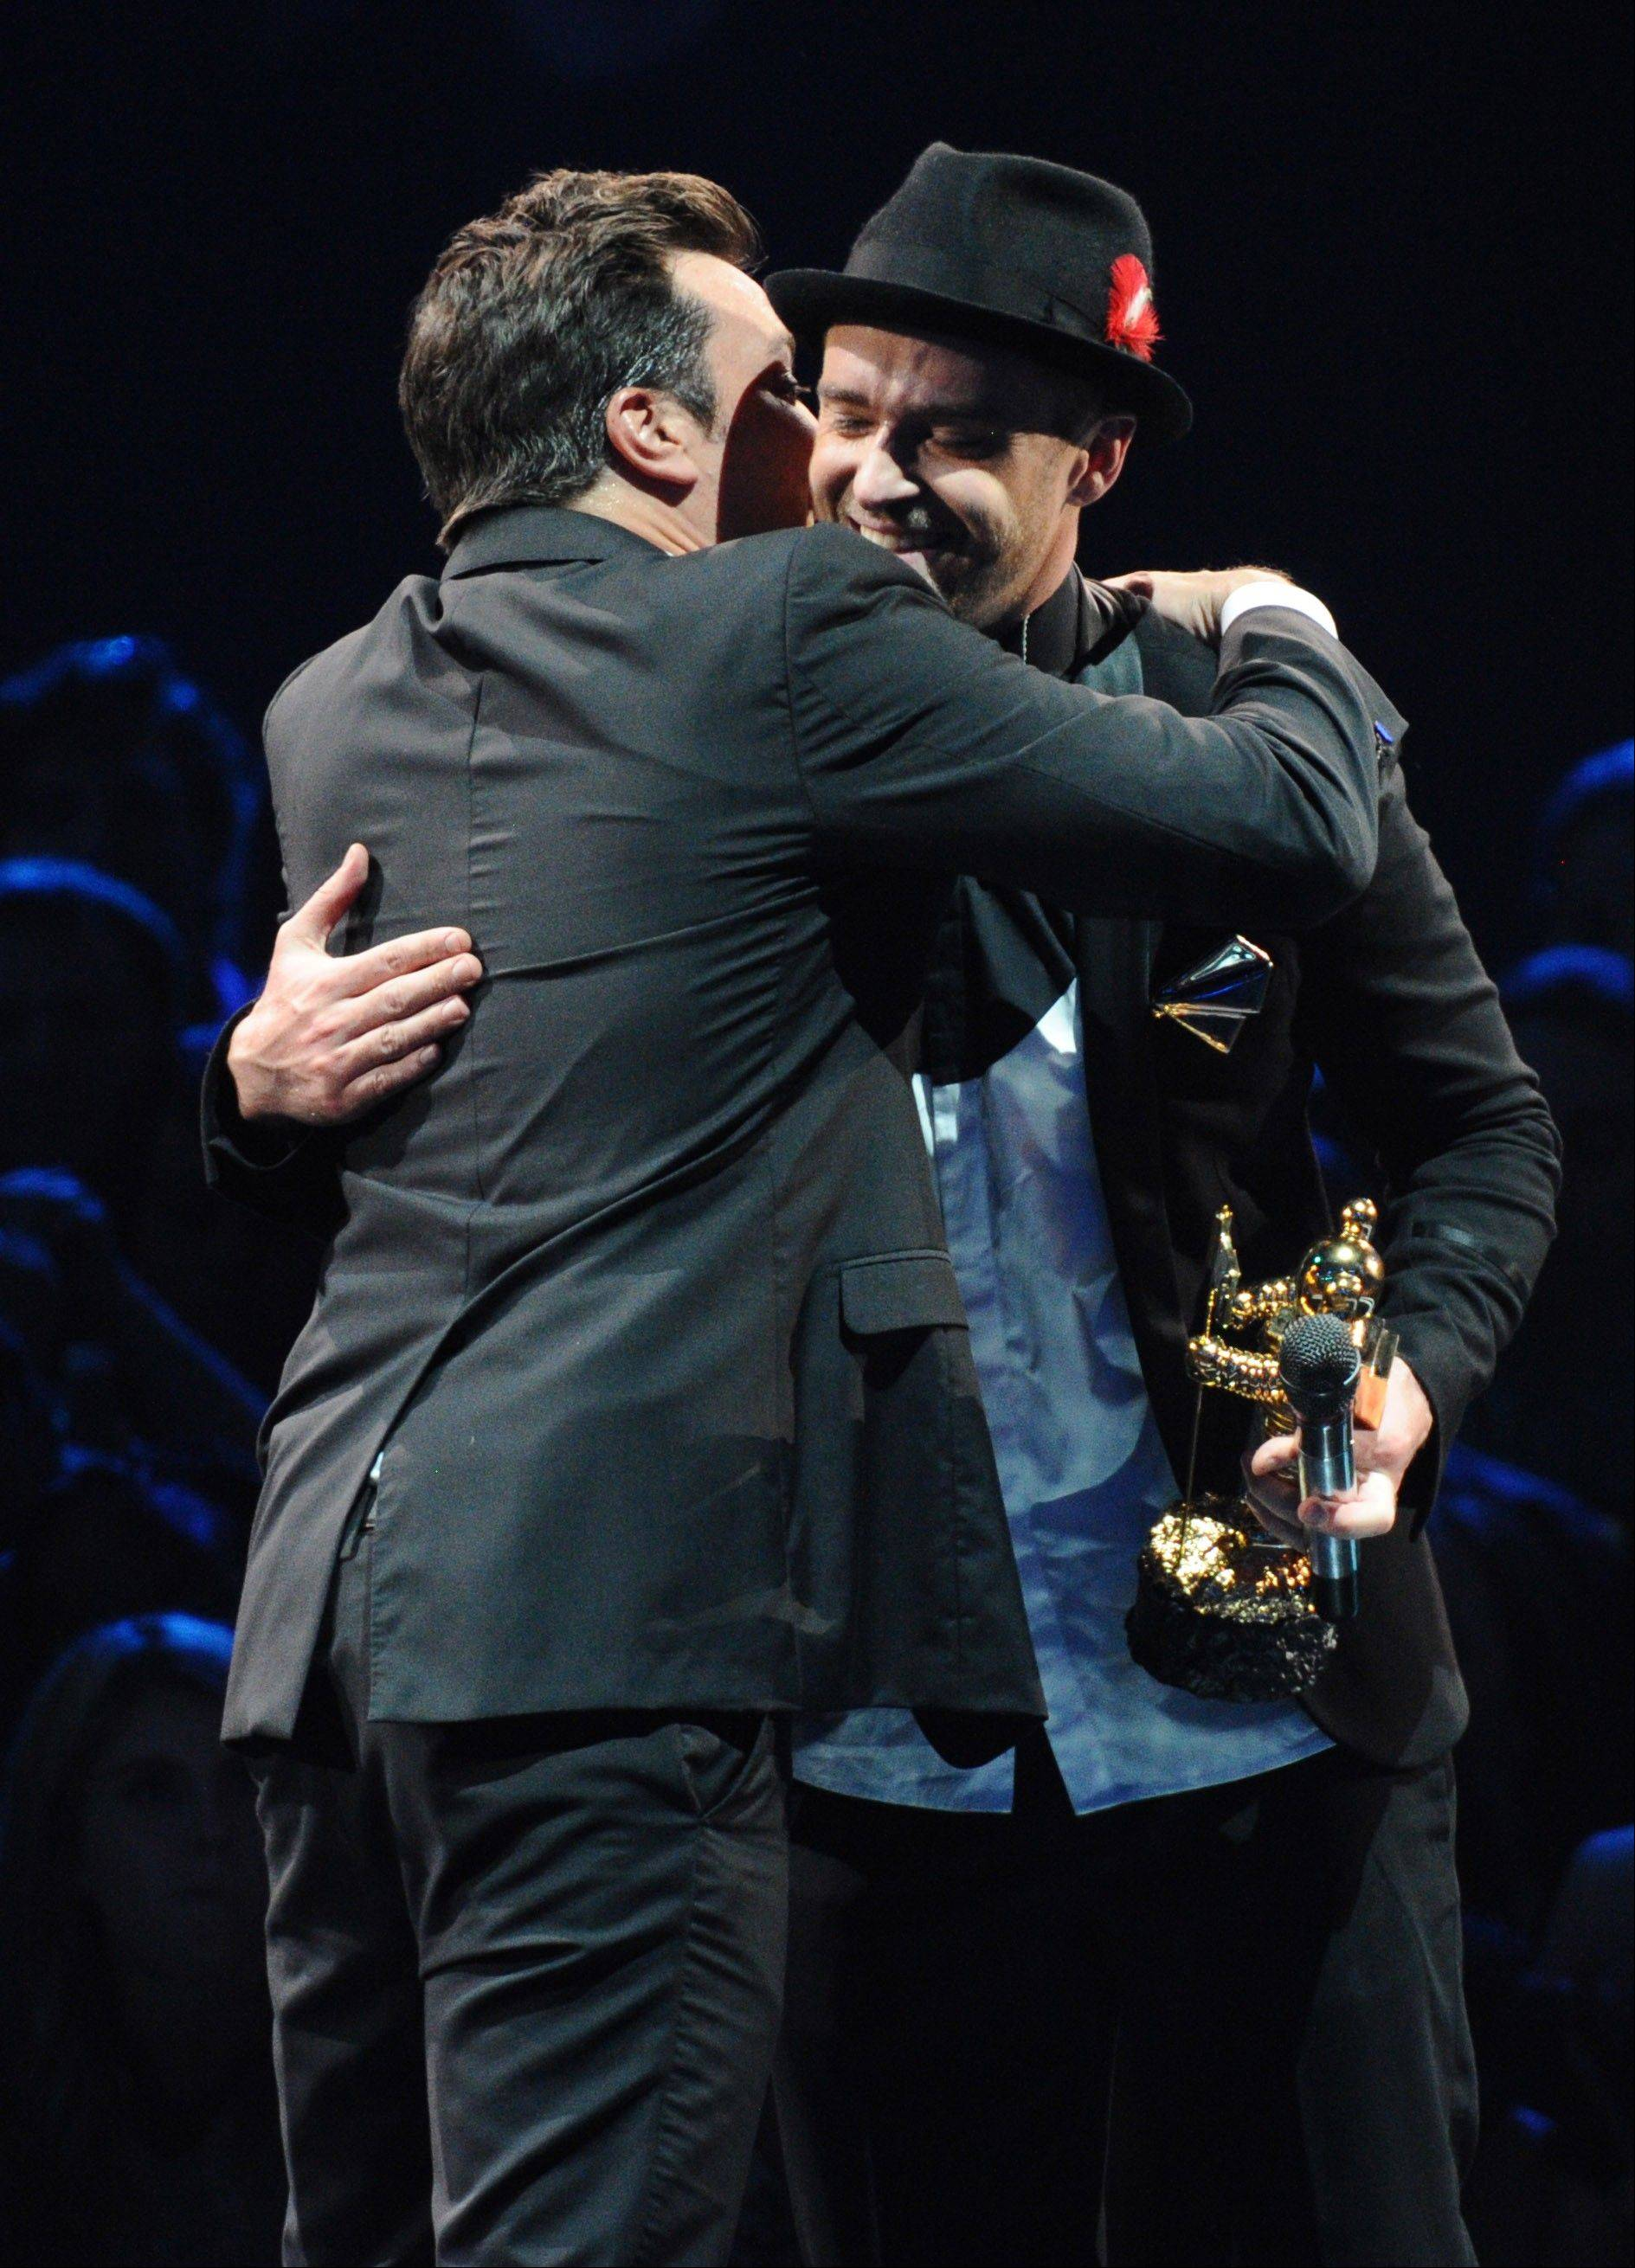 Justin Timberlake accepts the video vanguard award from Jimmy Fallon, left, at the MTV Video Music Awards on Sunday, Aug. 25, 2013, at the Barclays Center in the Brooklyn borough of New York.